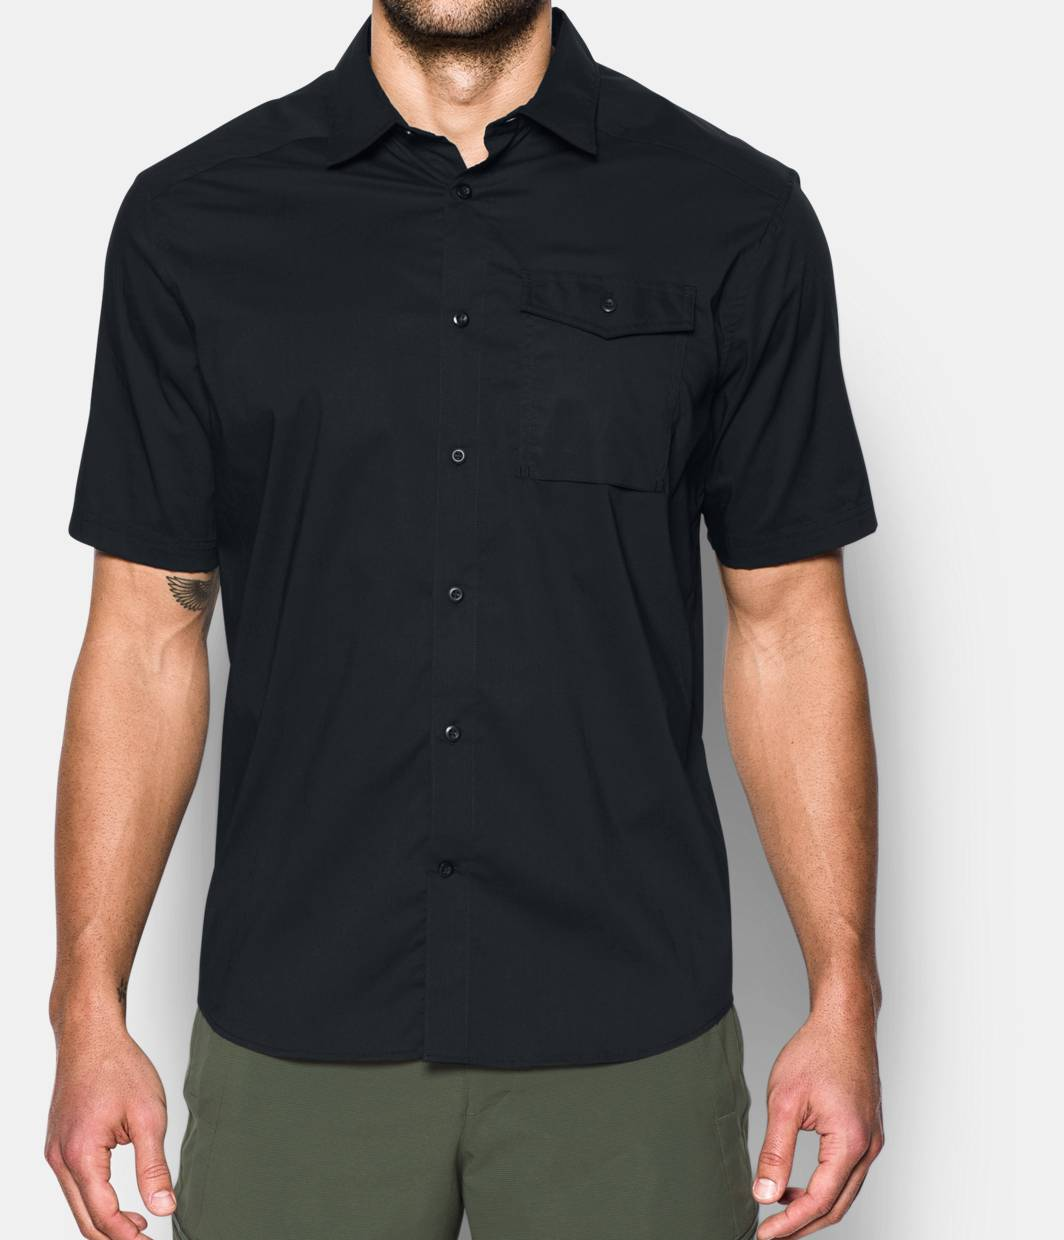 Black t shirt under button down - Men S Ua Tactical Button Down Short Sleeve 3 Colors 74 99